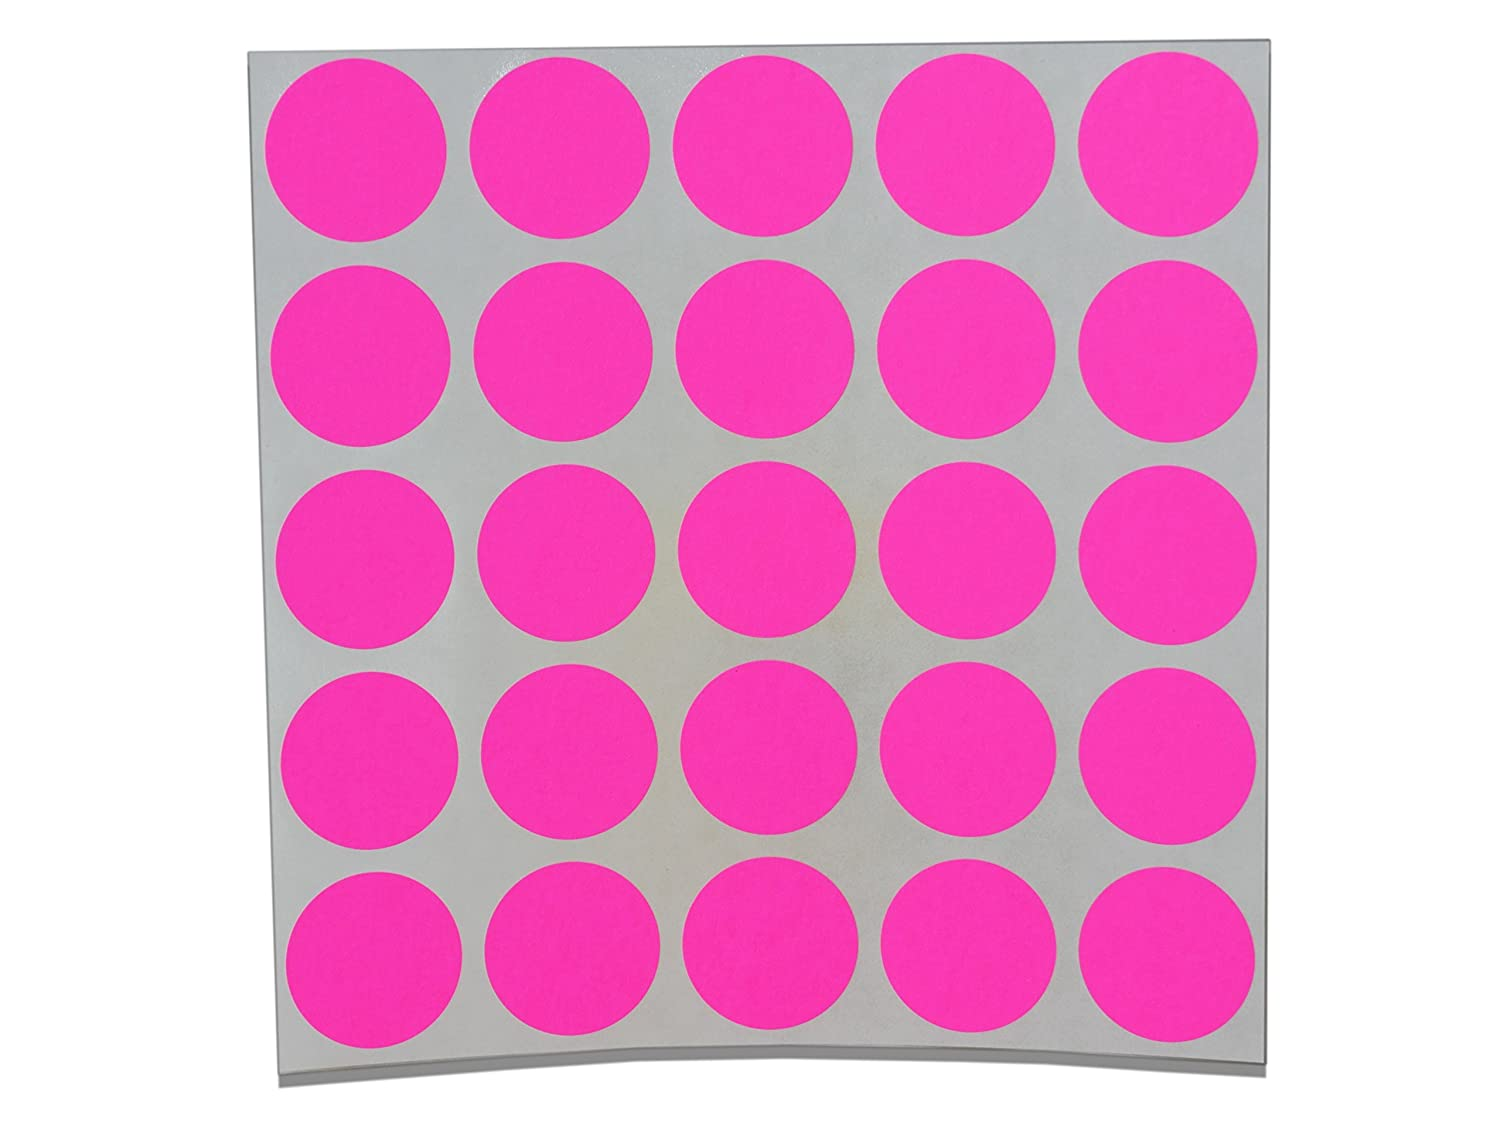 Color Coding Labels Super Bright Fluorescent Neon Round Circle Dots for Organizing Inventory 1 Inch 500 Total Adhesive Stickers (Fluorescent Pink)